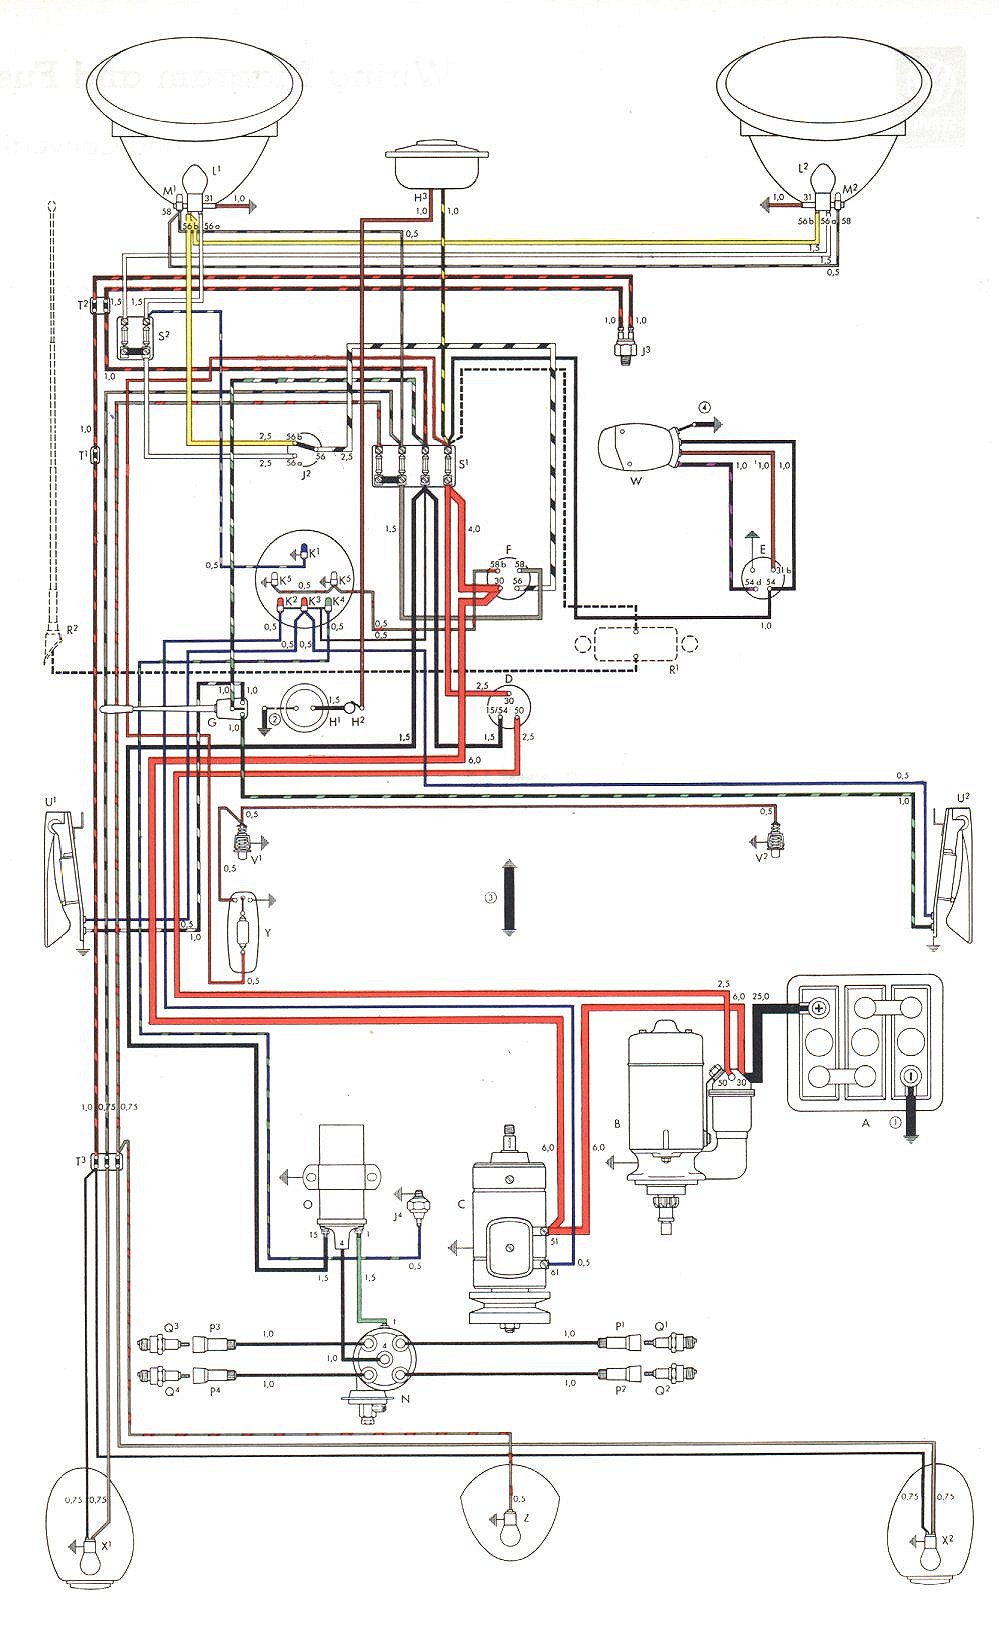 VW Wiring Diagrams on 2001 jetta dome light harness, 68 vw wire harness, vw coil wiring, vw starter wiring, figure 8 cat harness, goldfish harness, vw engine wiring, vw bus wiring location, vw bus regulator wiring, vw alternator wiring, vw headlight wiring, vw beetle carburetor wiring, vw ignition wiring, vw wiring diagrams, vw wiring kit, dual car stereo wire harness, besi harness,